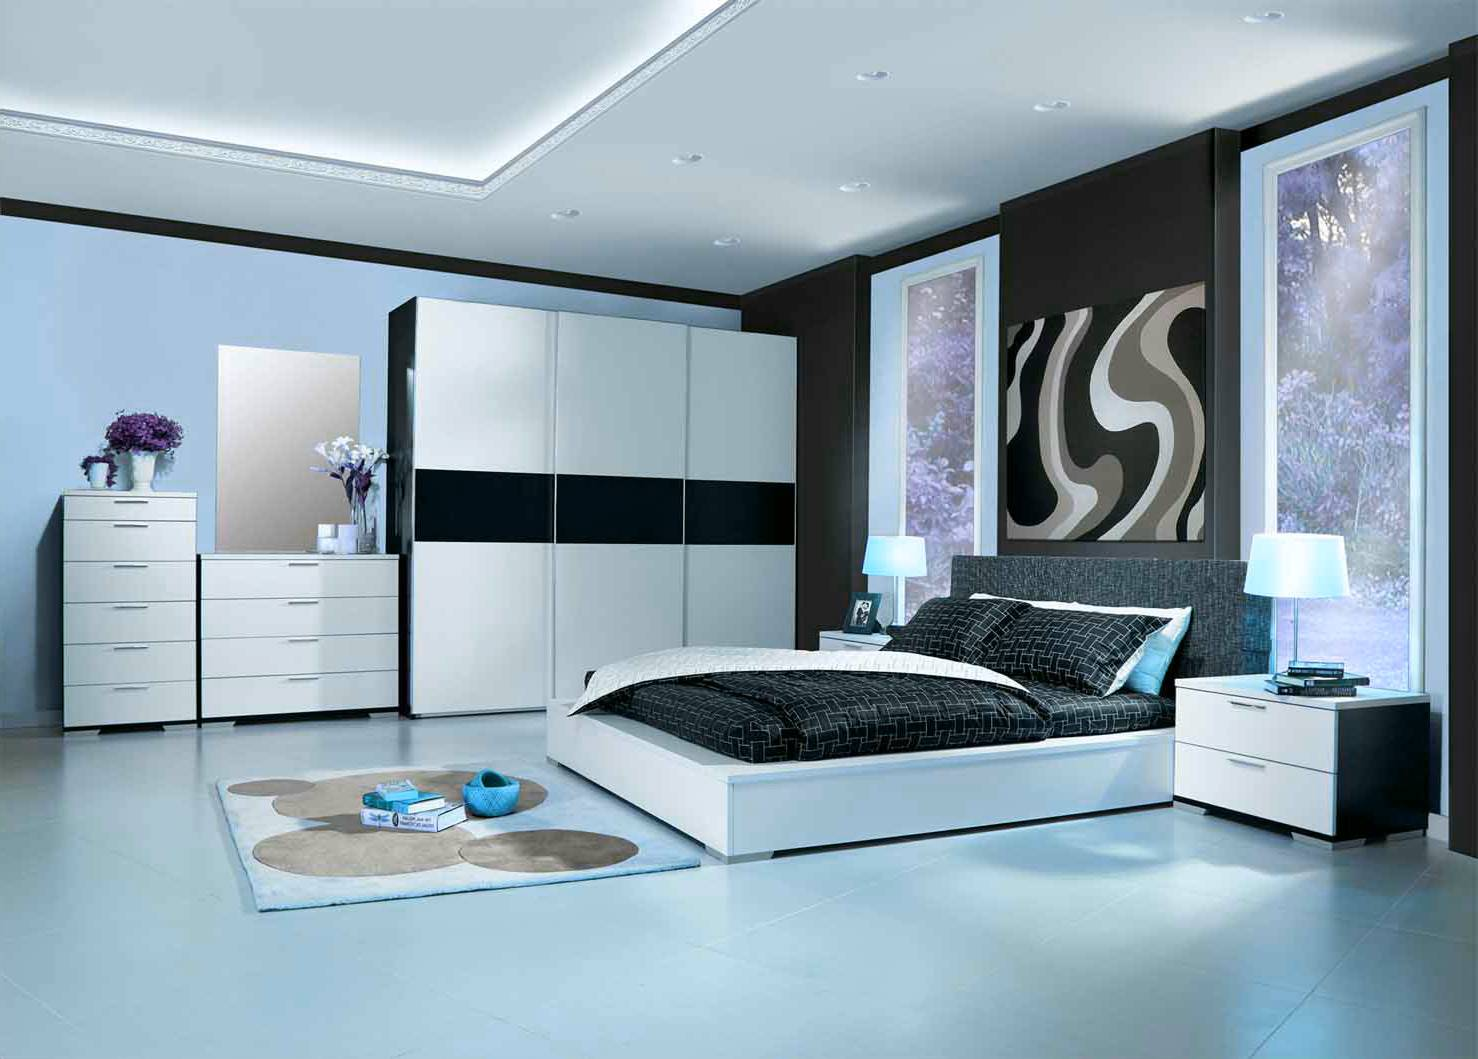 Interior-Design-For-Bedrooms-With-Interior-Design-Bedroom-Design-Decorating